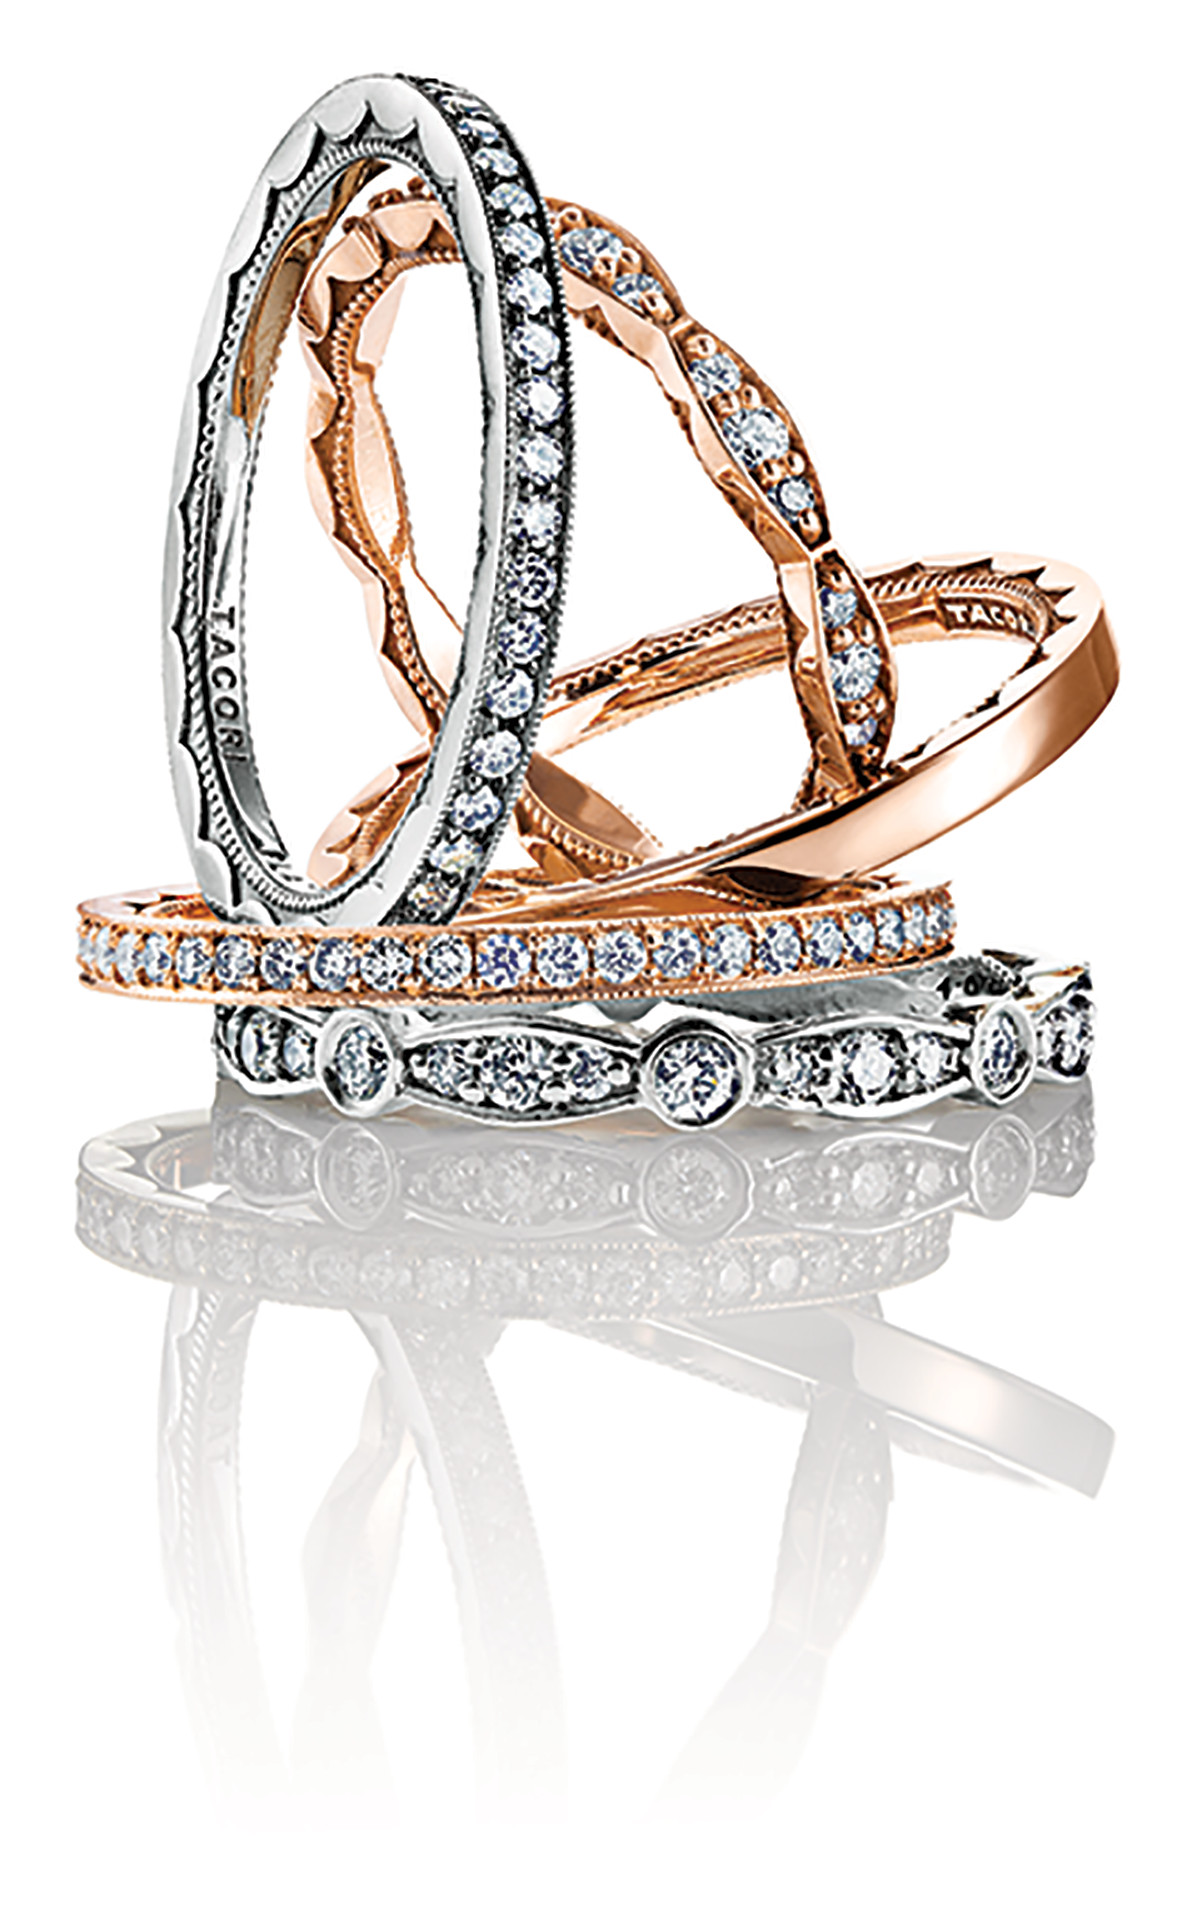 Visit Icing On The Ring at the LA Jewelry District